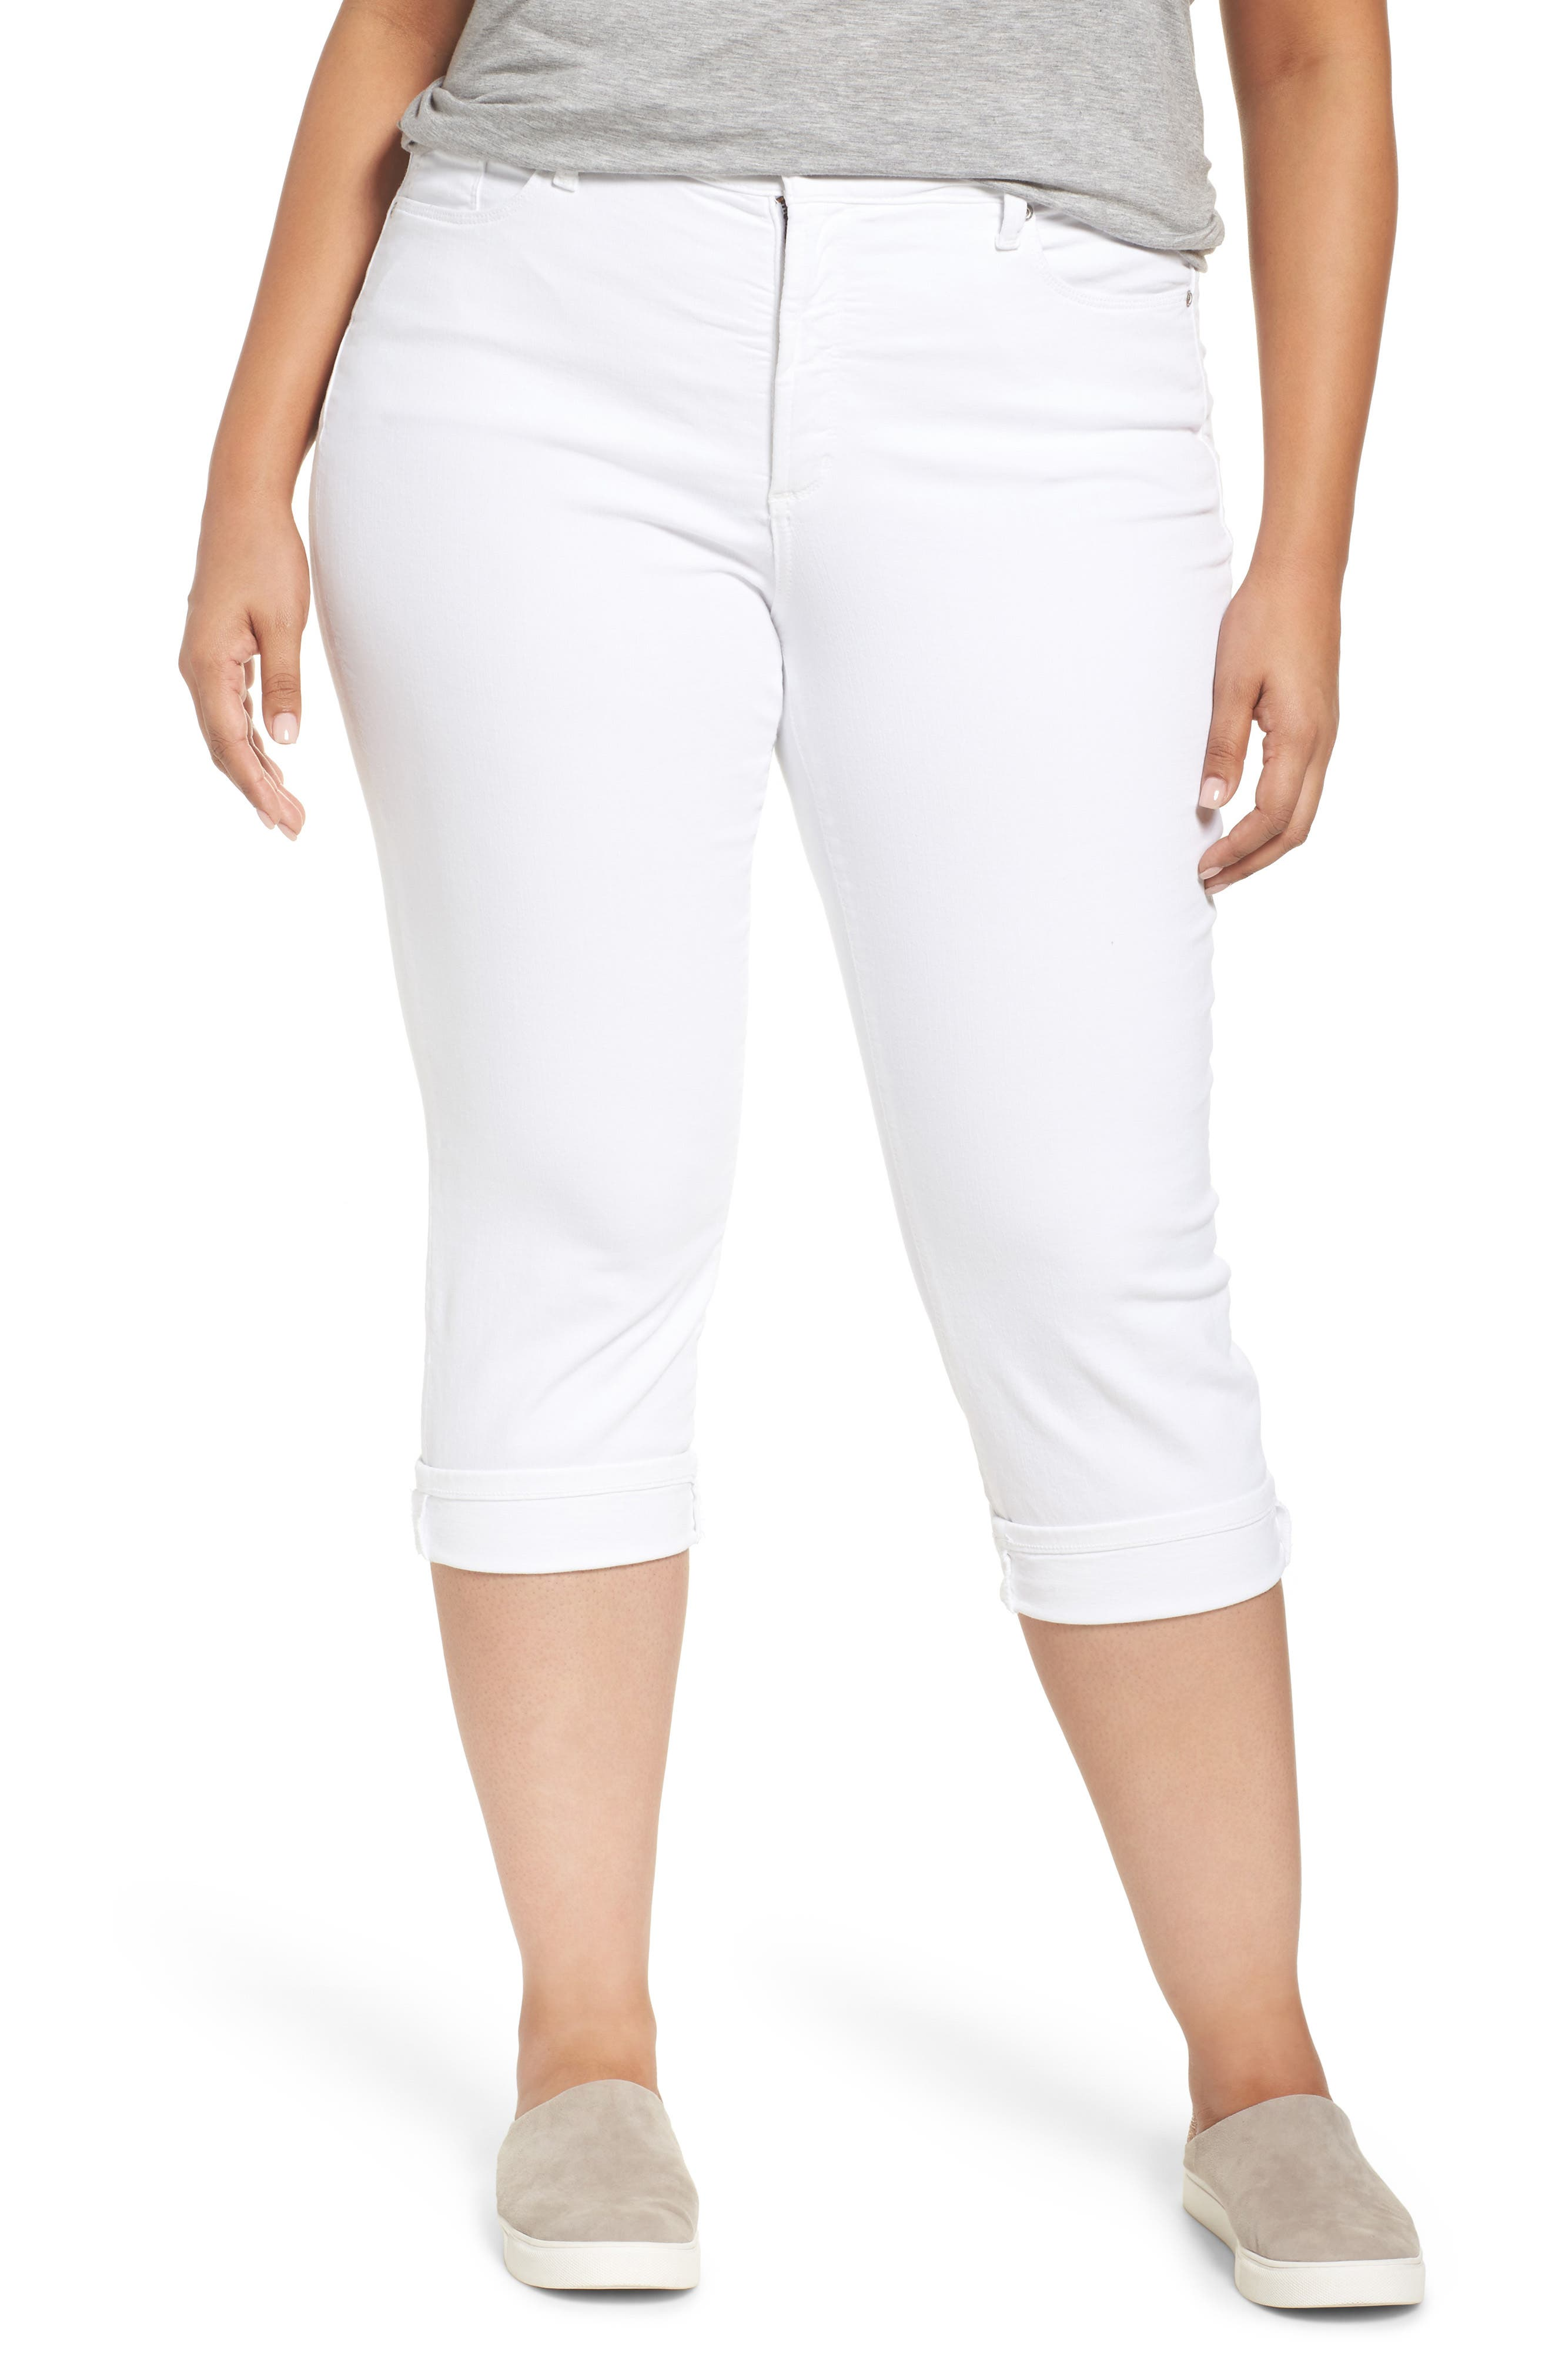 NYDJ, Marilyn Crop Cuff Jeans, Main thumbnail 1, color, WHITE